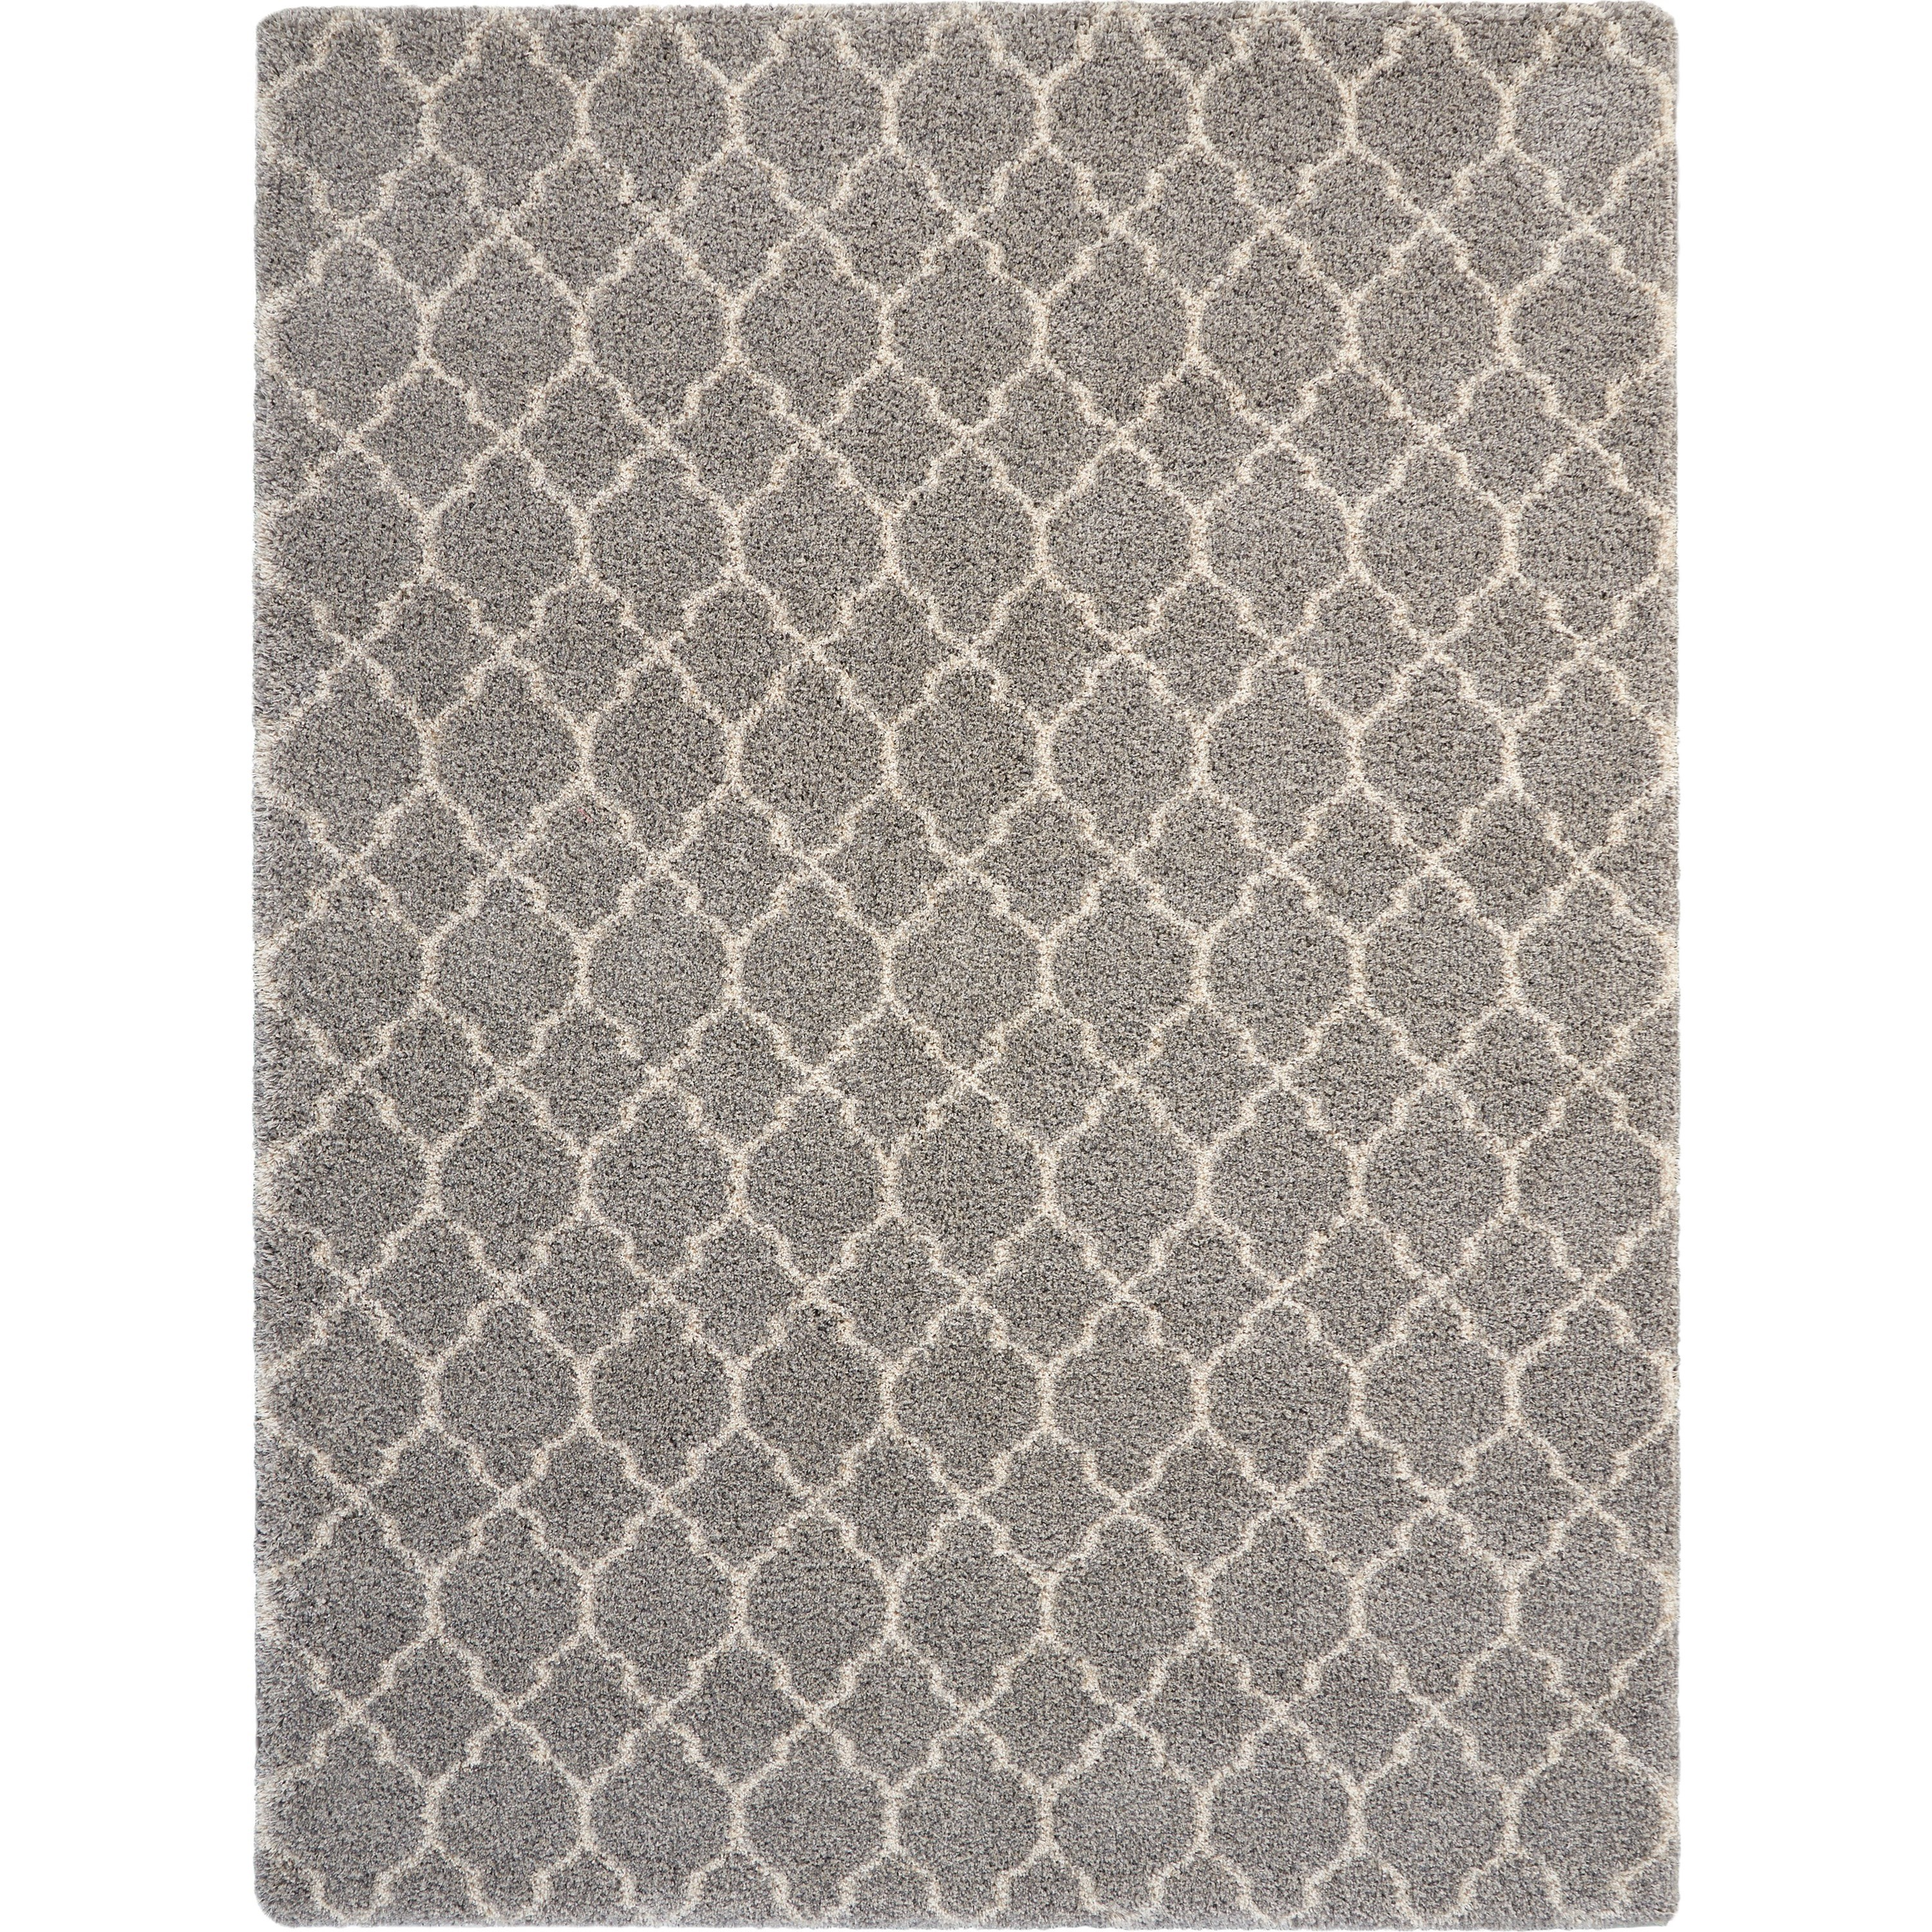 Amore Amore AMOR2 Beige 8'x11'   Rug by Nourison at Home Collections Furniture